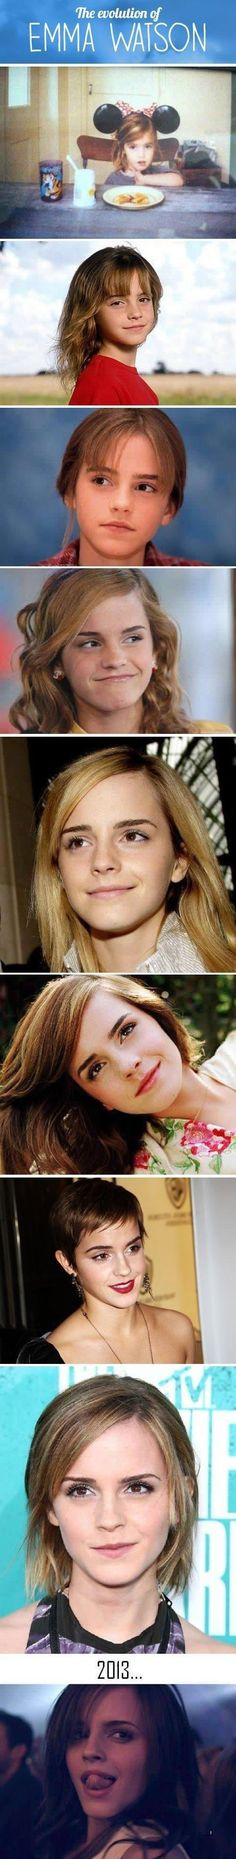 The Evolution of Emma Watson (Hermione Granger, Harry Potter) Harry Potter Film, Harry Potter Love, Hermione Granger, Jenifer Lawrence, Patrick Swayze, John Travolta, Emilia Clarke, Leonardo Dicaprio, Celebs